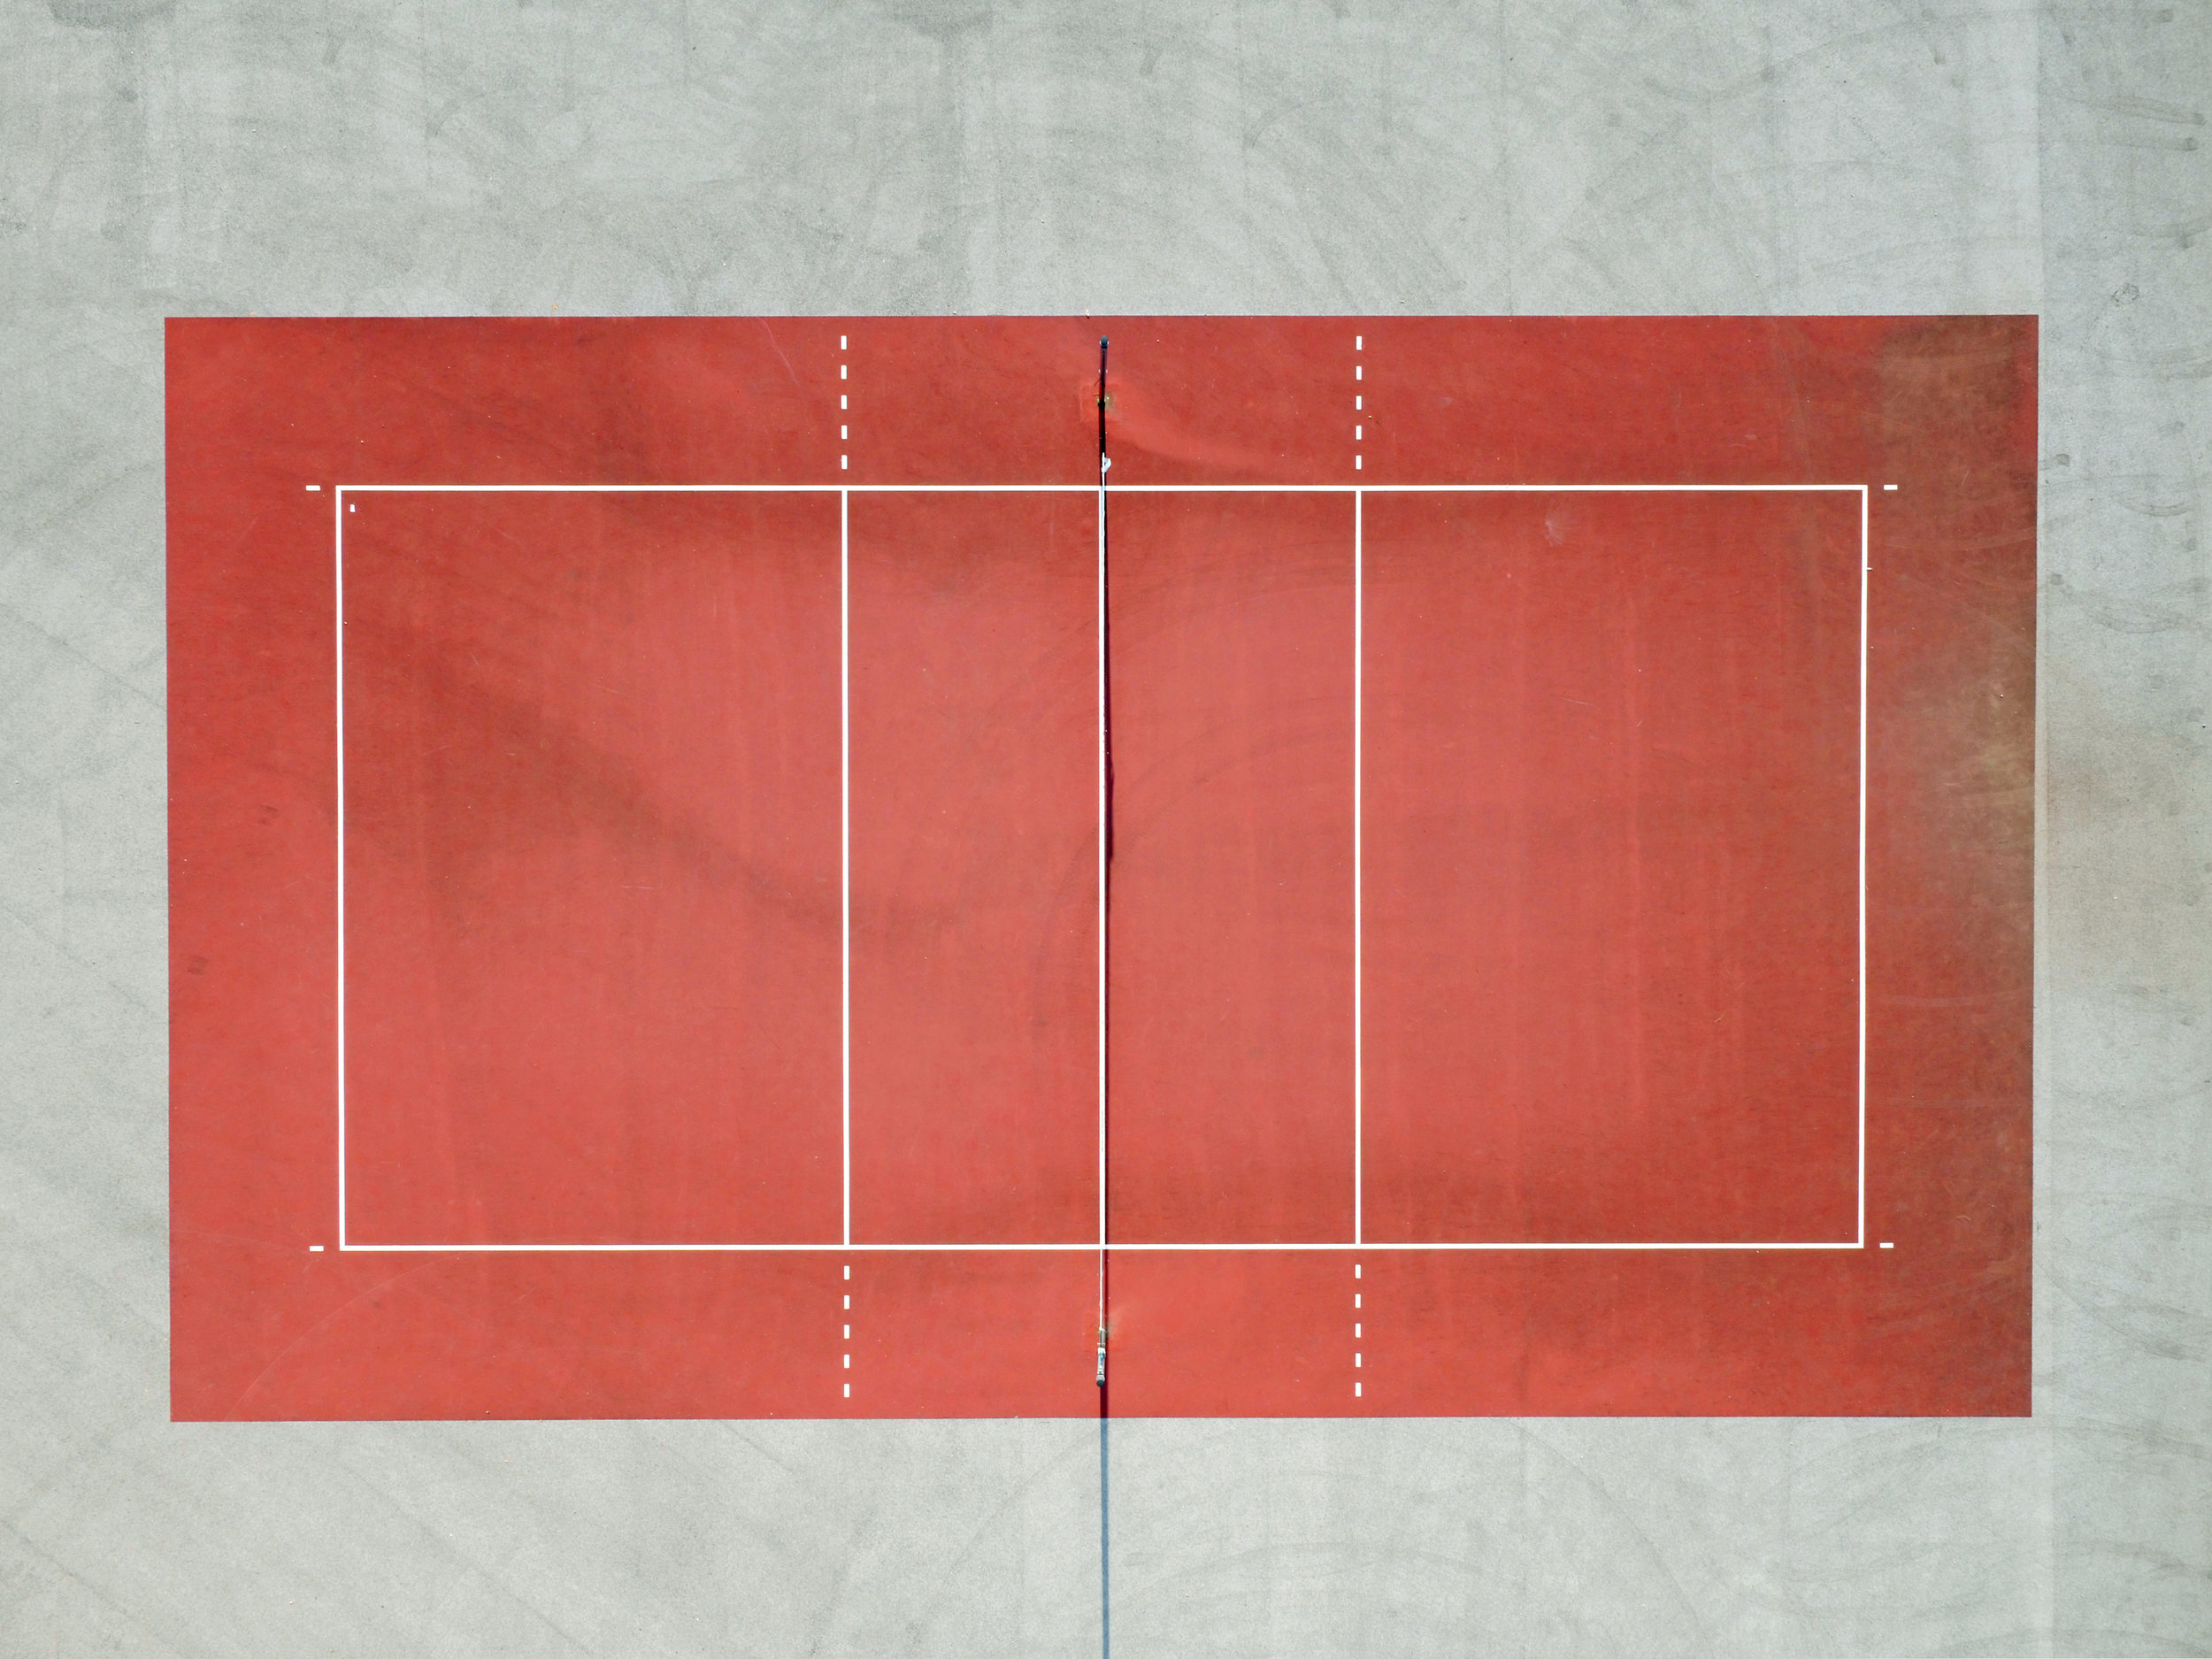 Bird's-eye view of an empty volleyball court